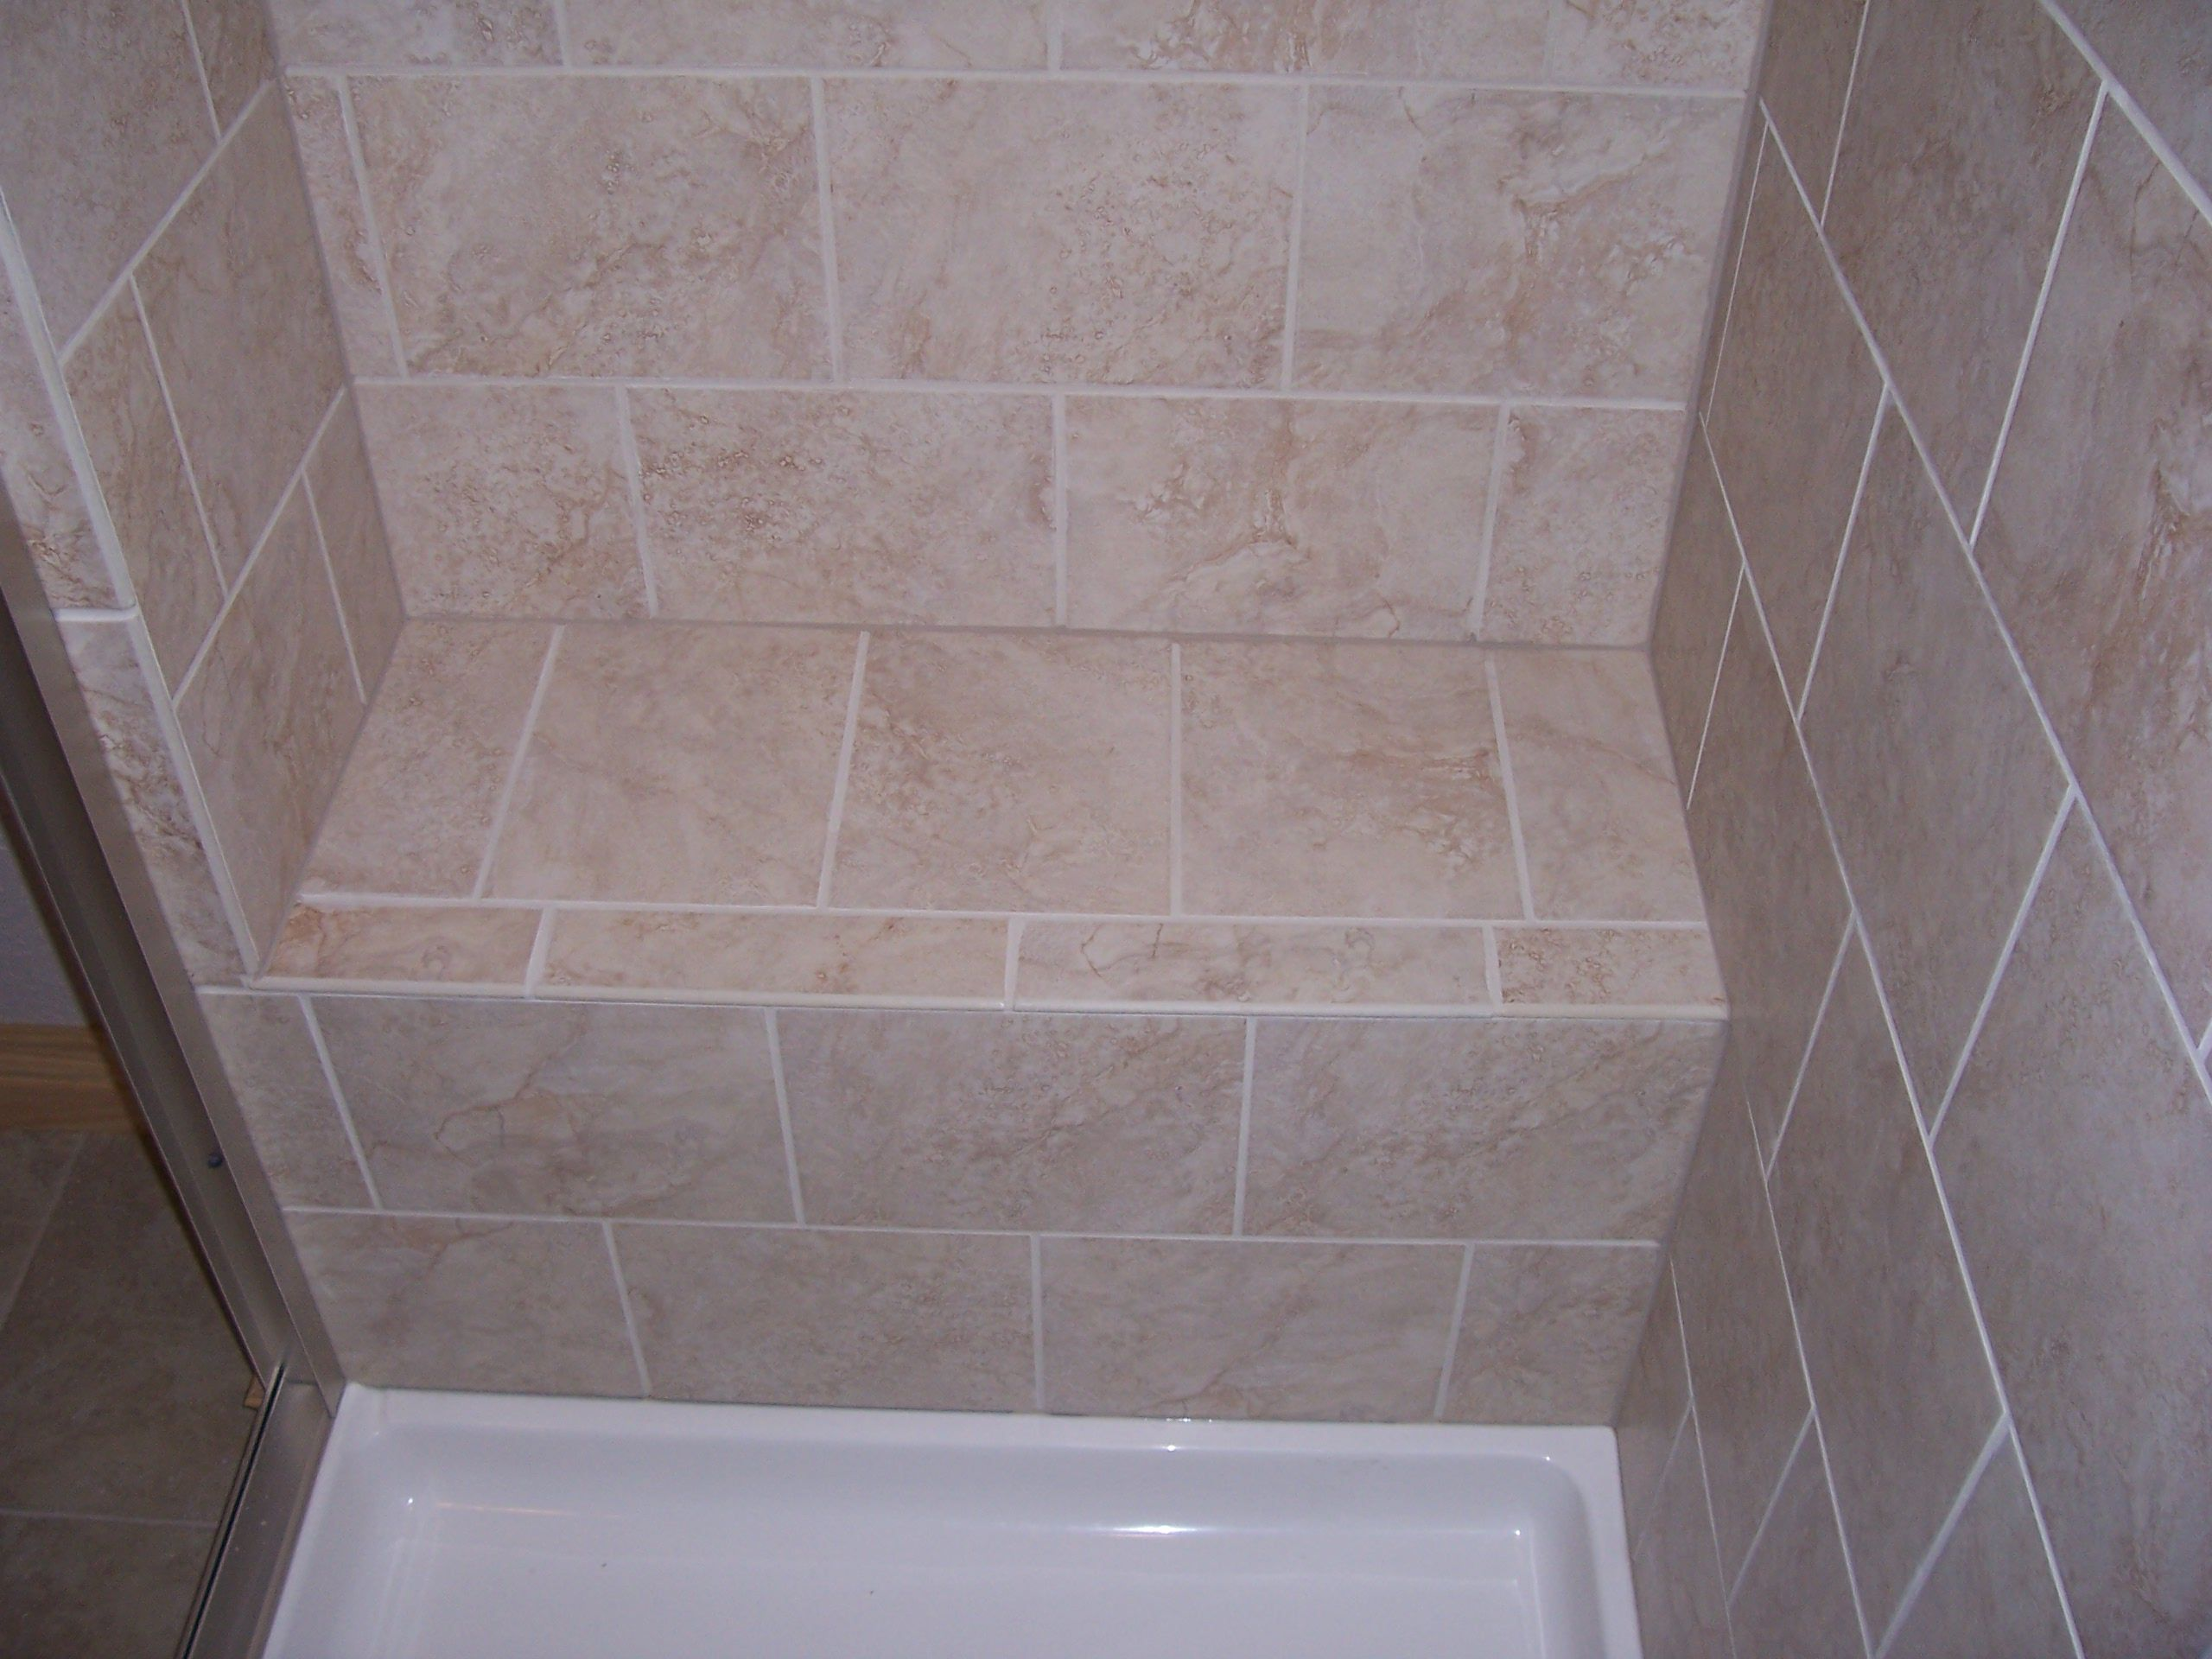 Built in seat in shower general home improvement ideas for Built in shower ideas